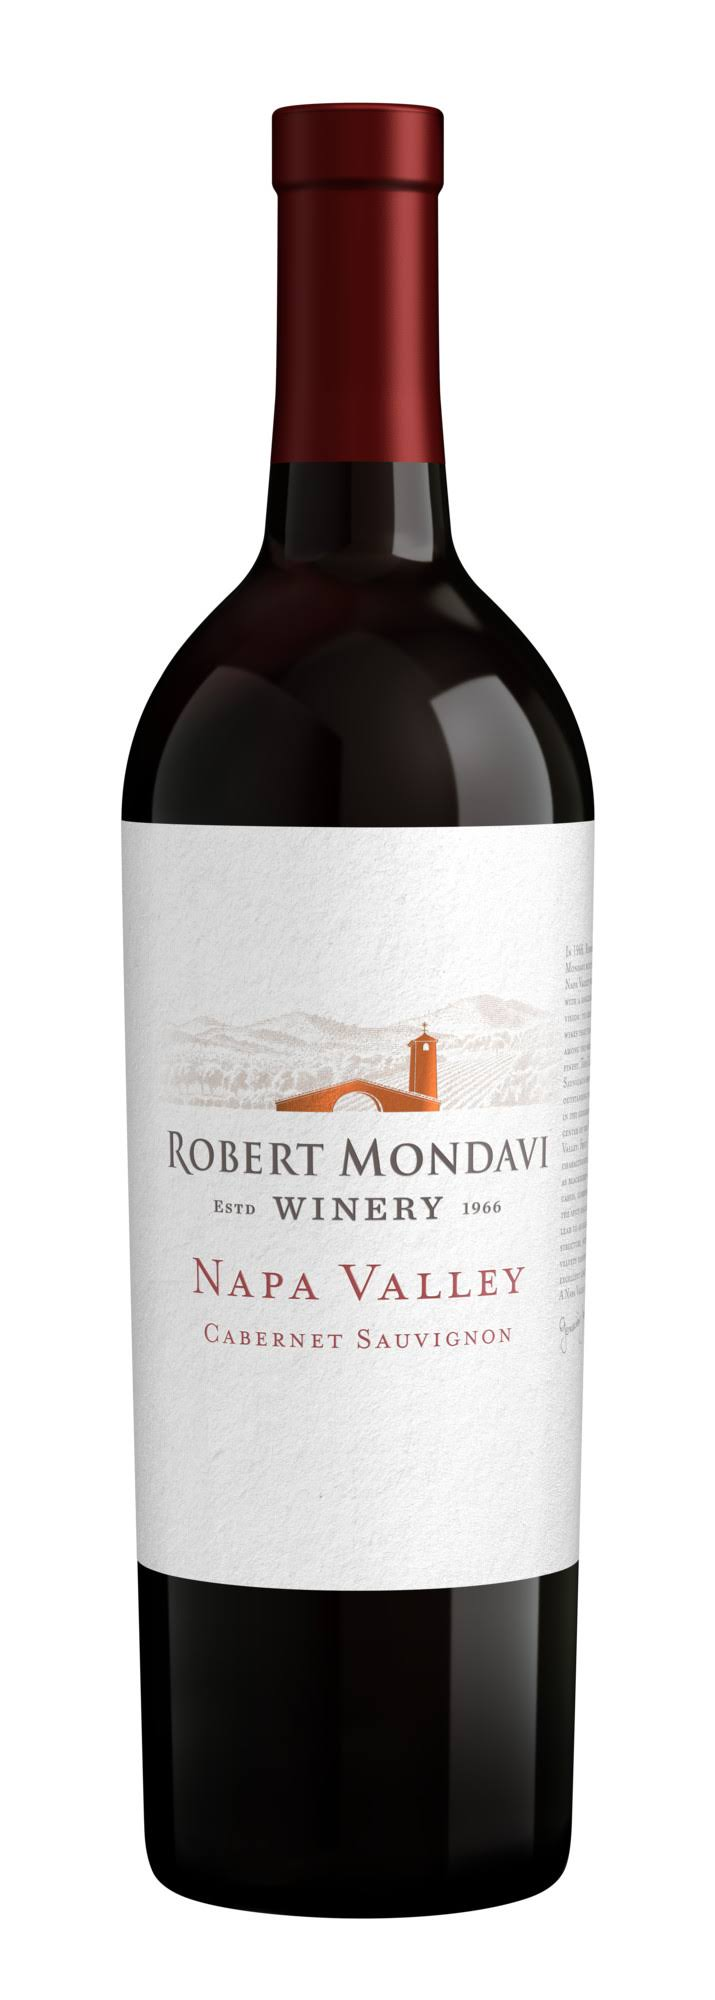 Robert Mondavi Napa Valley Cabernet Sauvignon - United States California